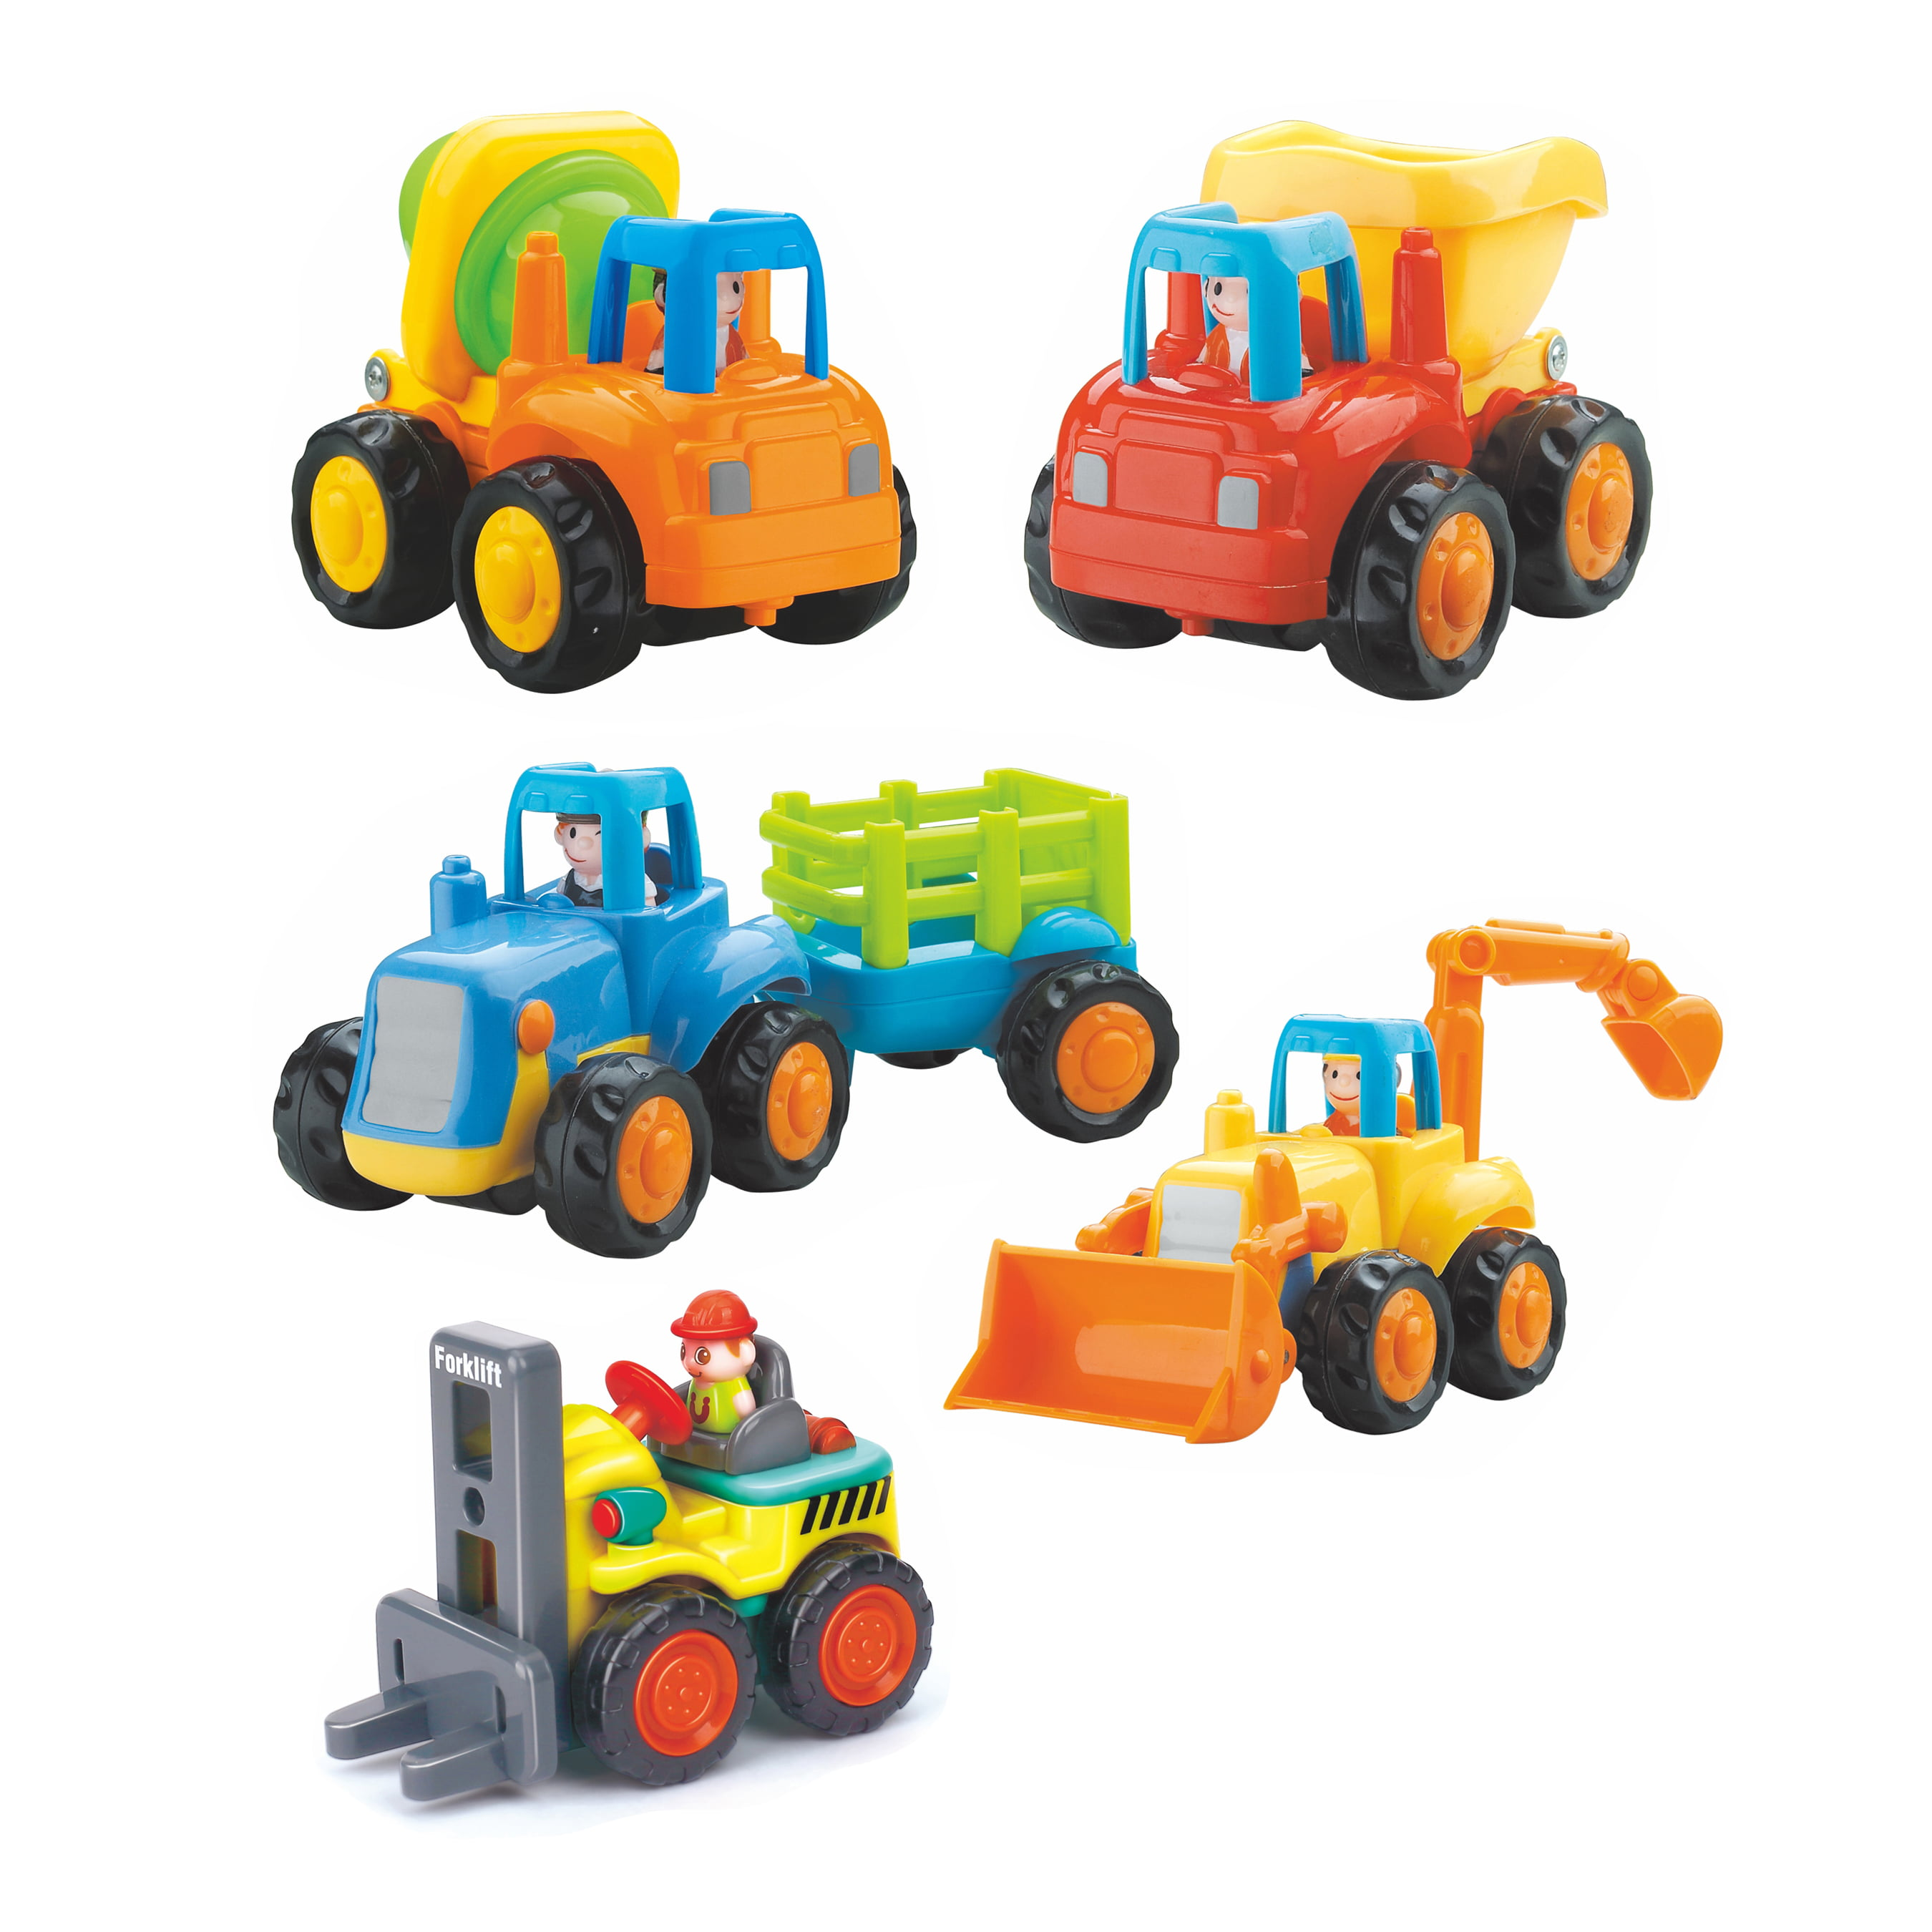 Huile Set of 4 Friction Powered Car Toys,Tractor,Dump truck,Cement Mixer,Bulldozer truck by Hola